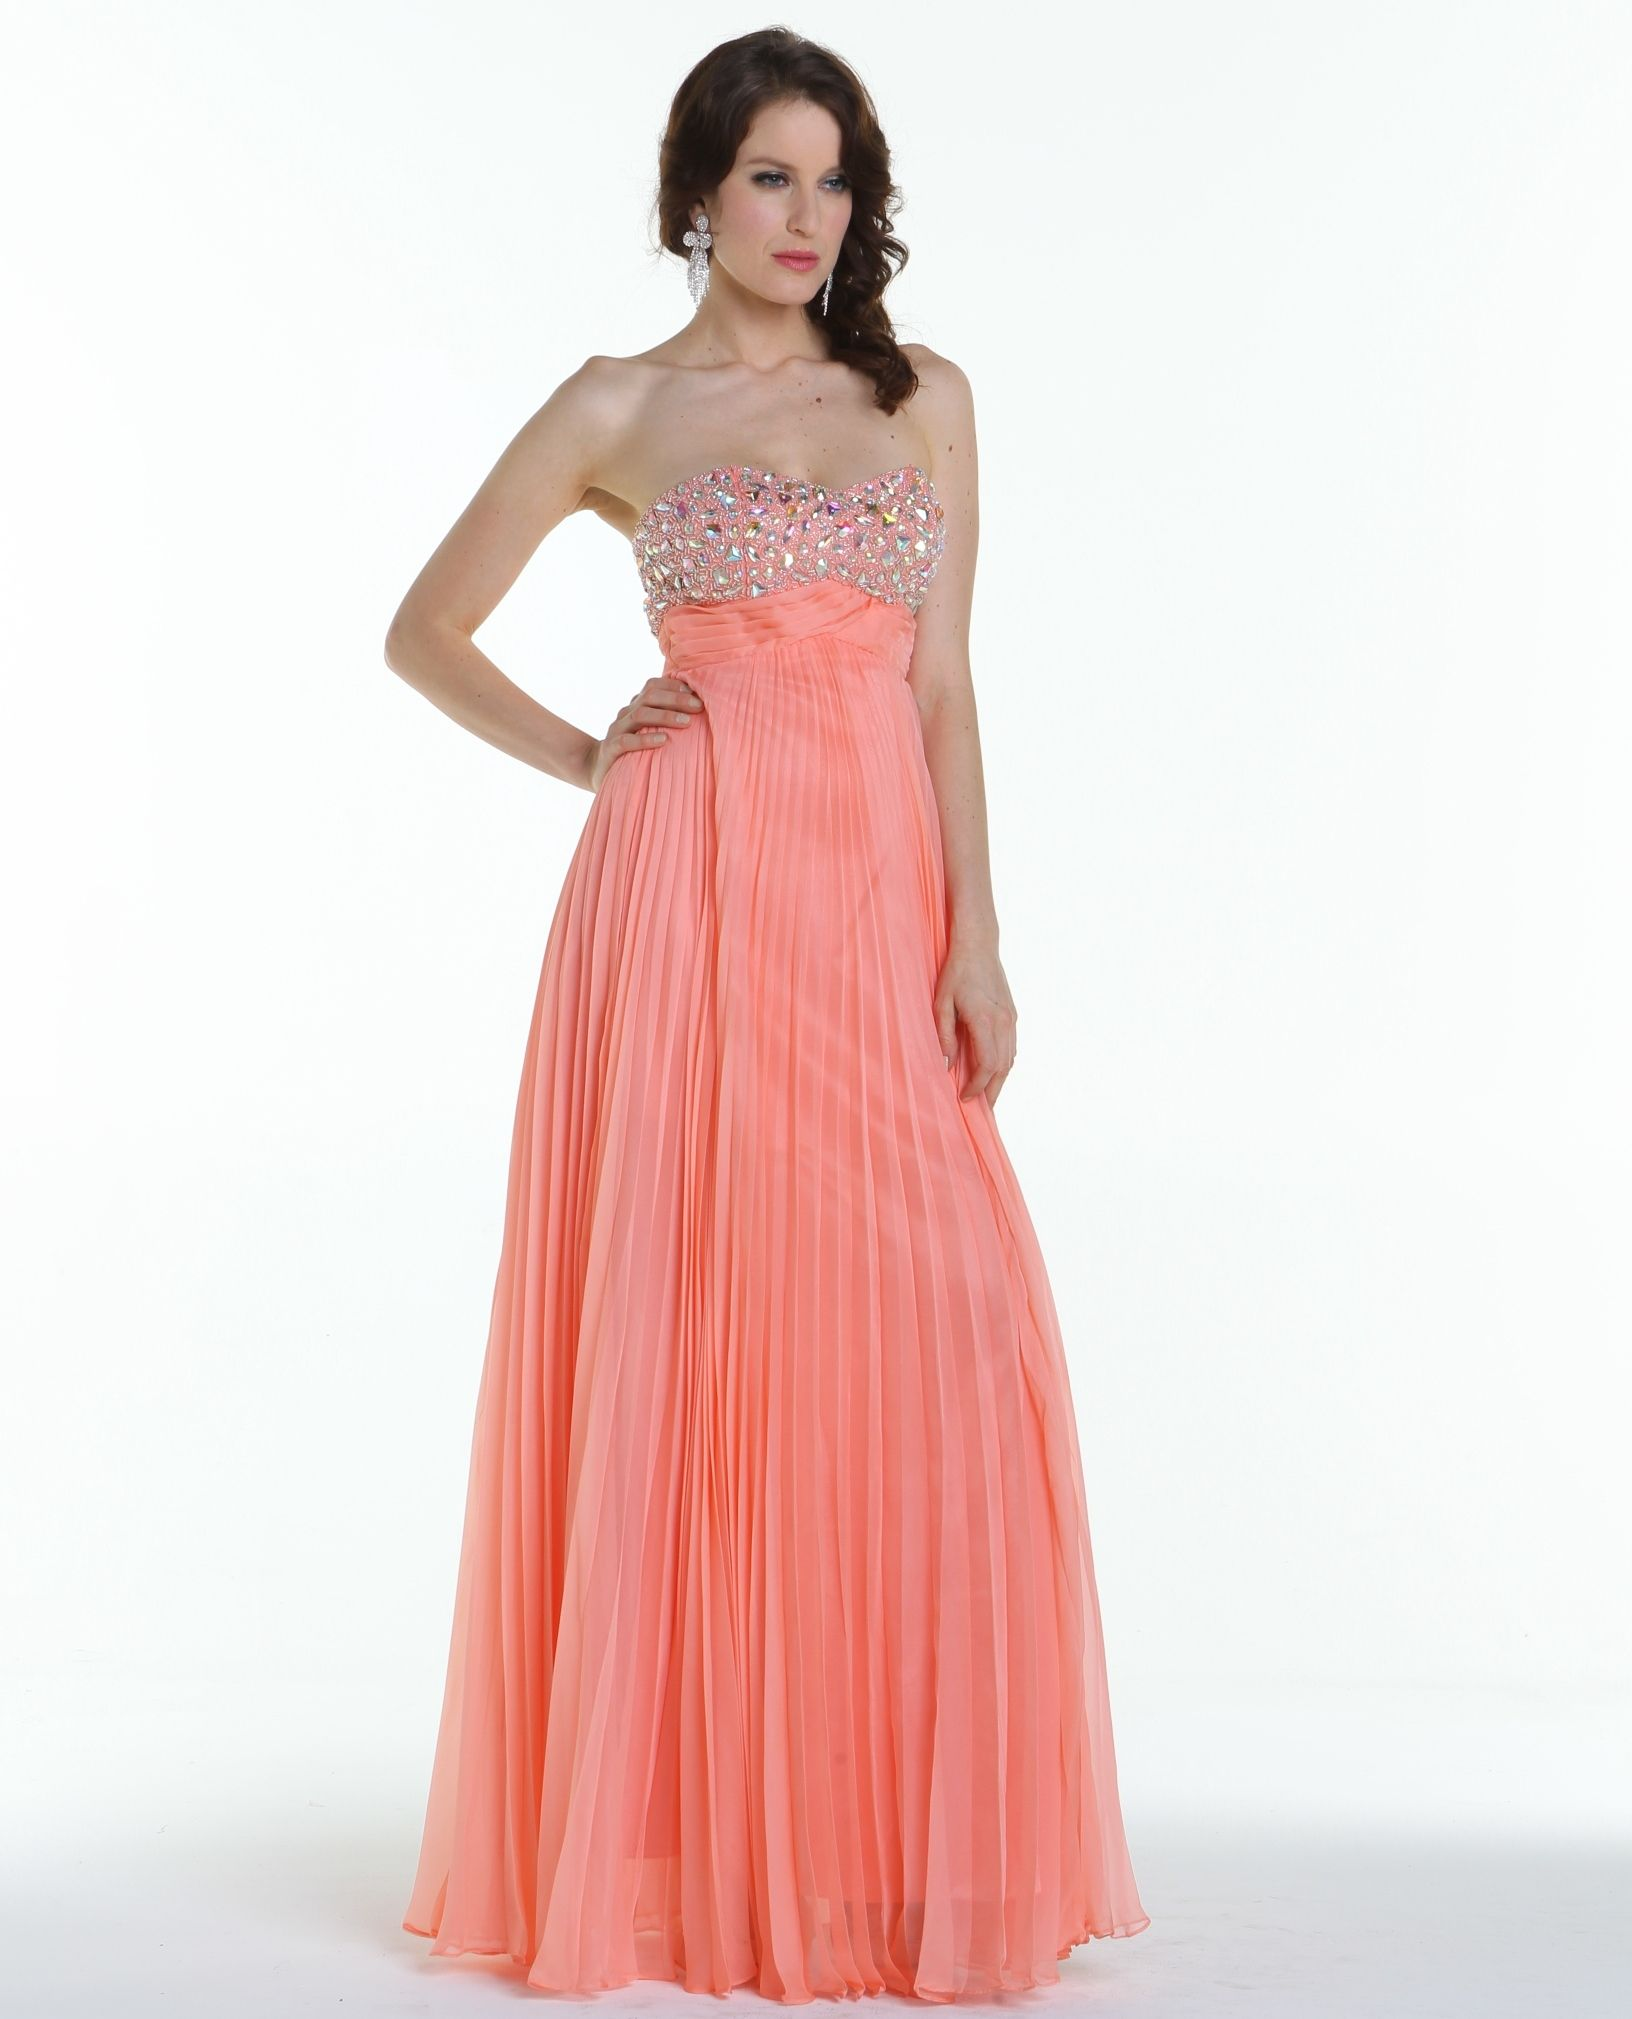 Coral Prom Gown. Vestido Largo en Coral. | Prom Dresses and ...